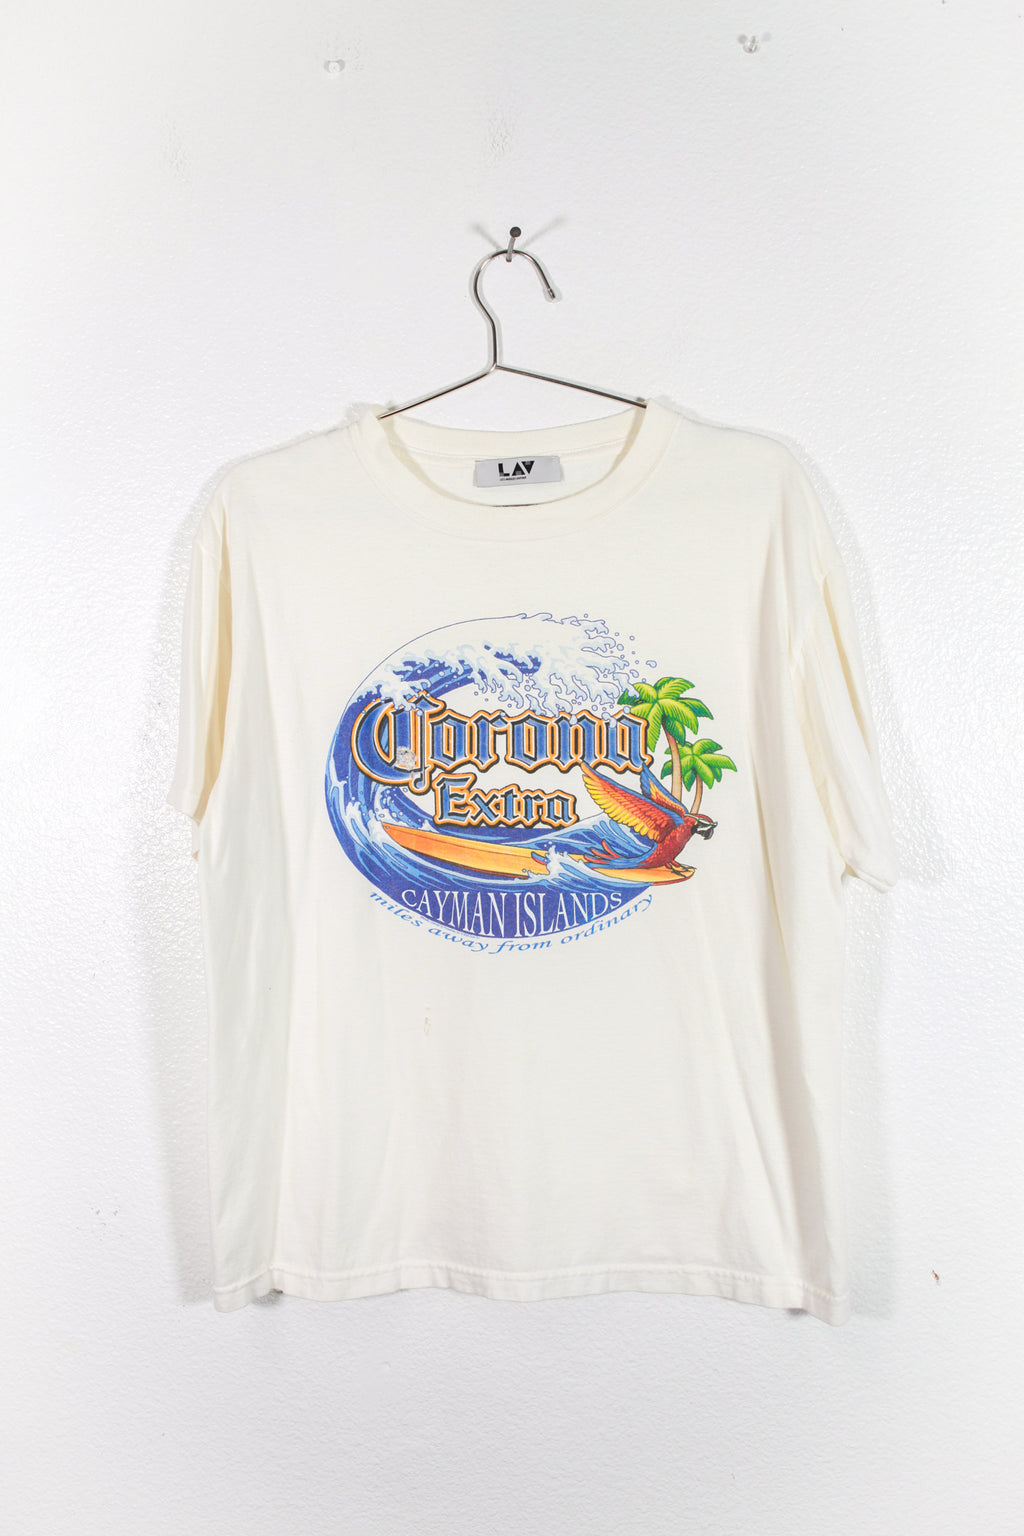 Vintage Corona Cayman Islands Tee